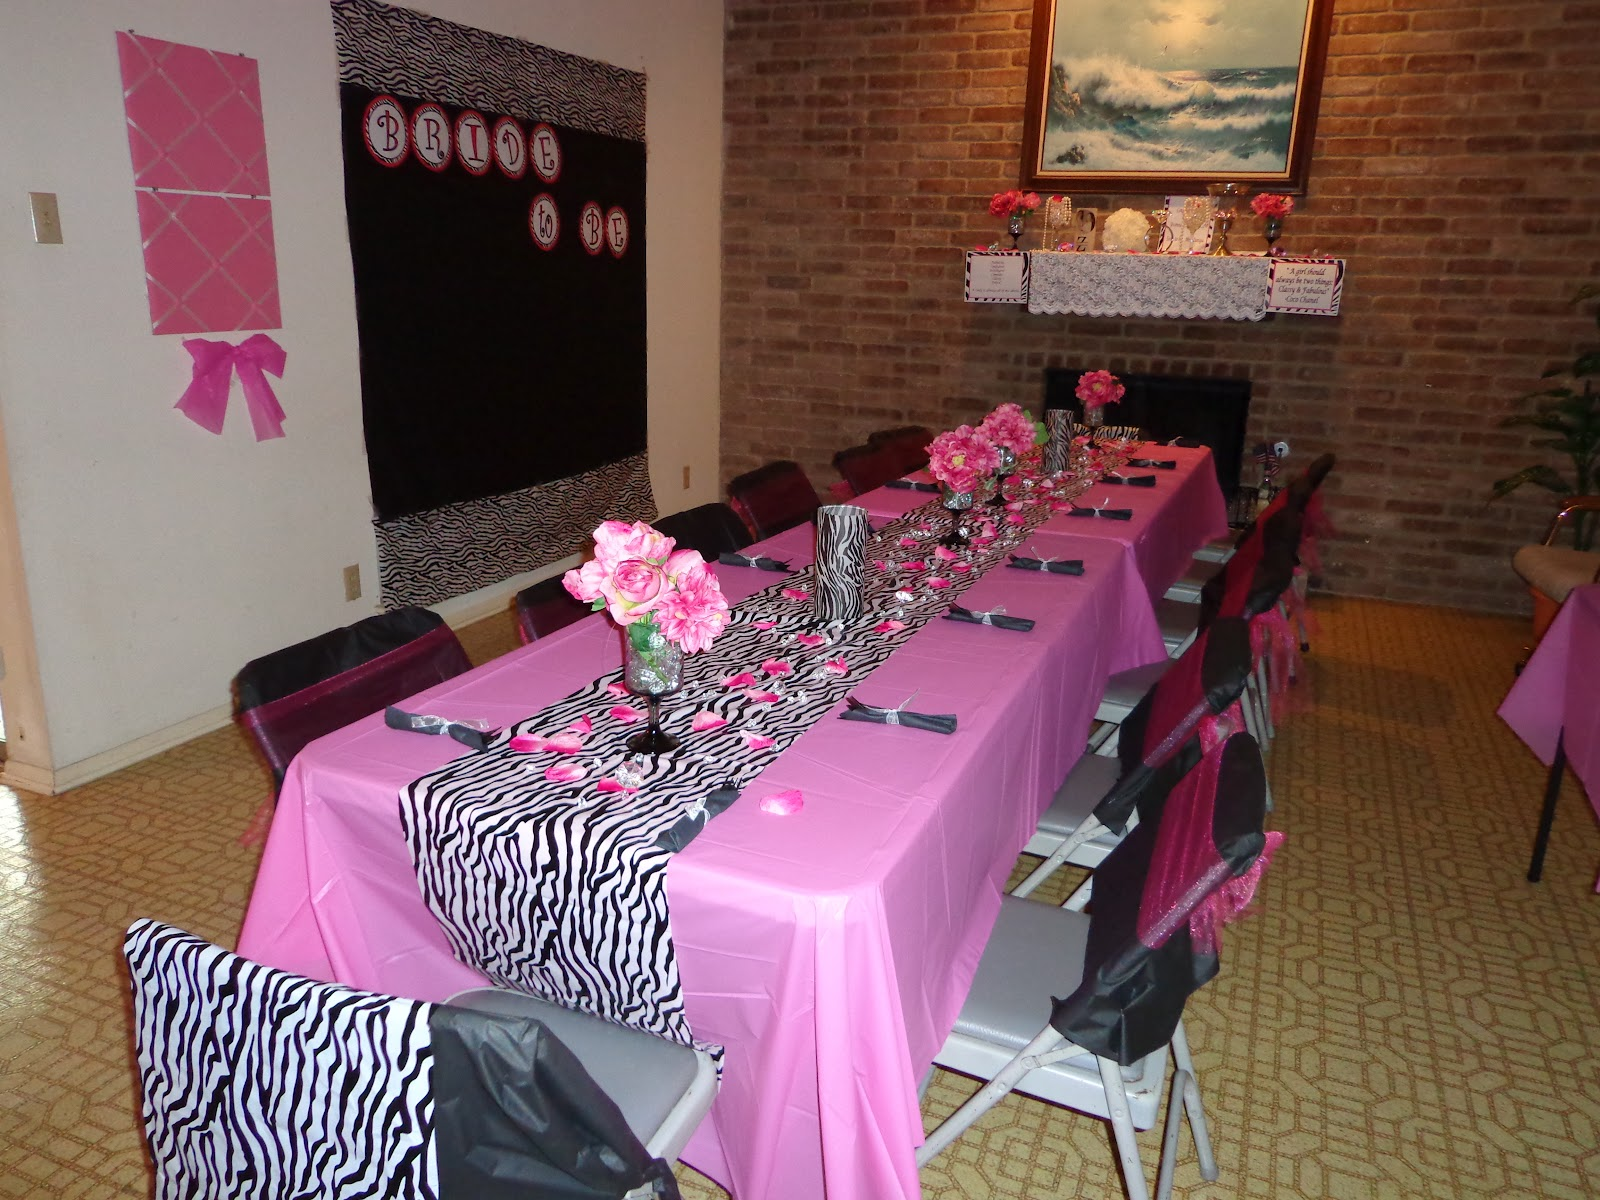 dollar tree bunny chair covers round kitchen table and chairs argos couture creations glitzy zebra lingerie shower